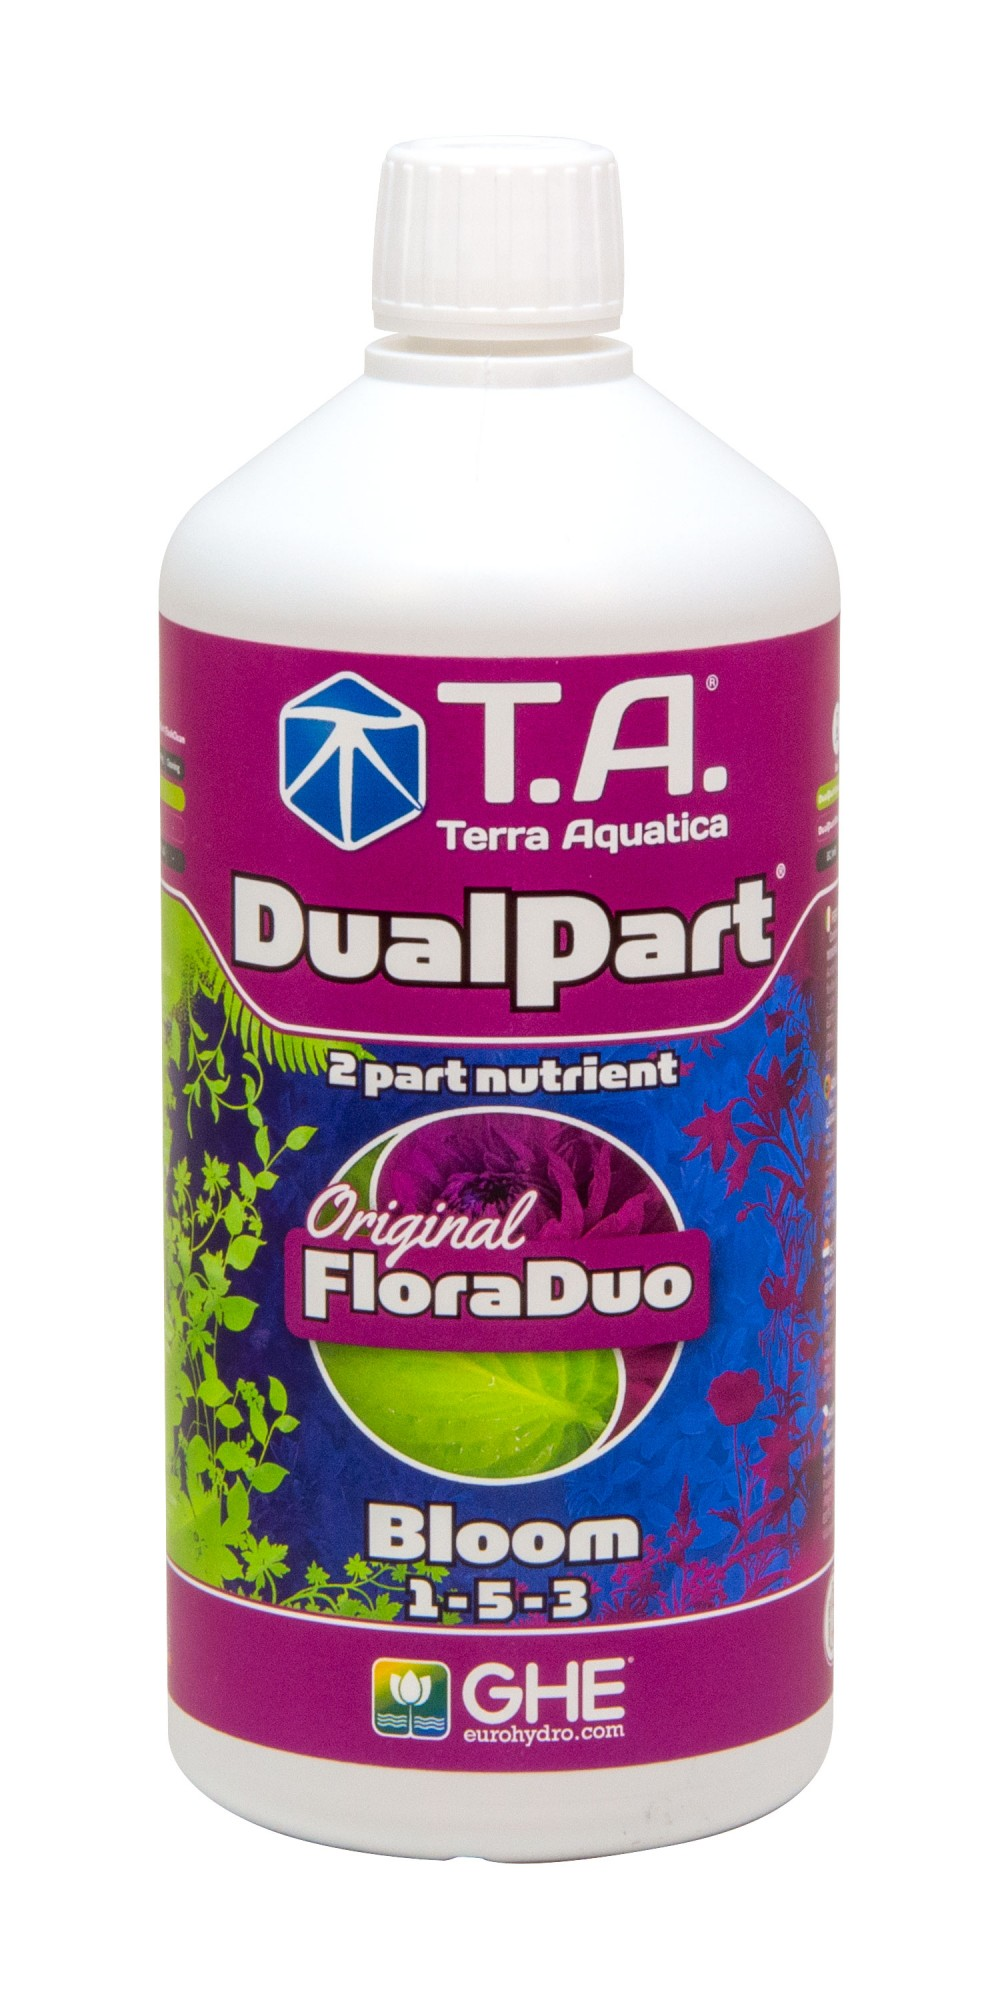 GHE FloraDuo Bloom 1L (DualPart Bloom)